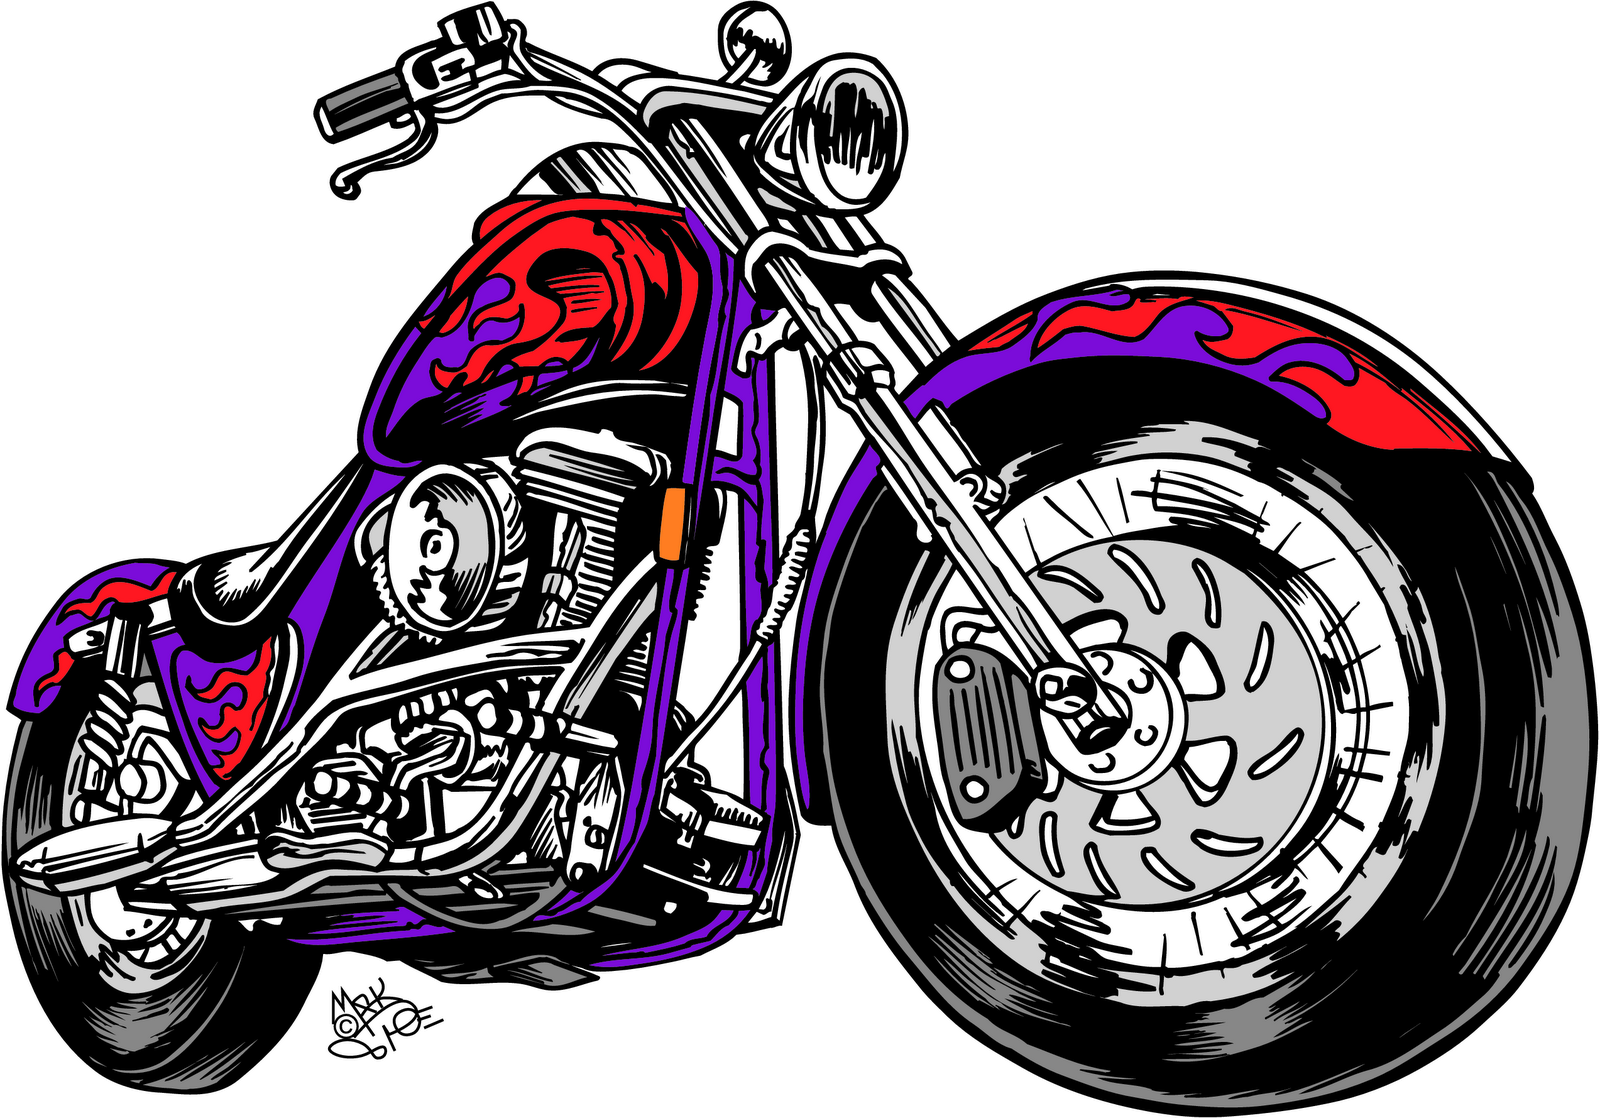 Motorcycle Clipart Black And White Free -Motorcycle clipart black and white free clipart 2-17